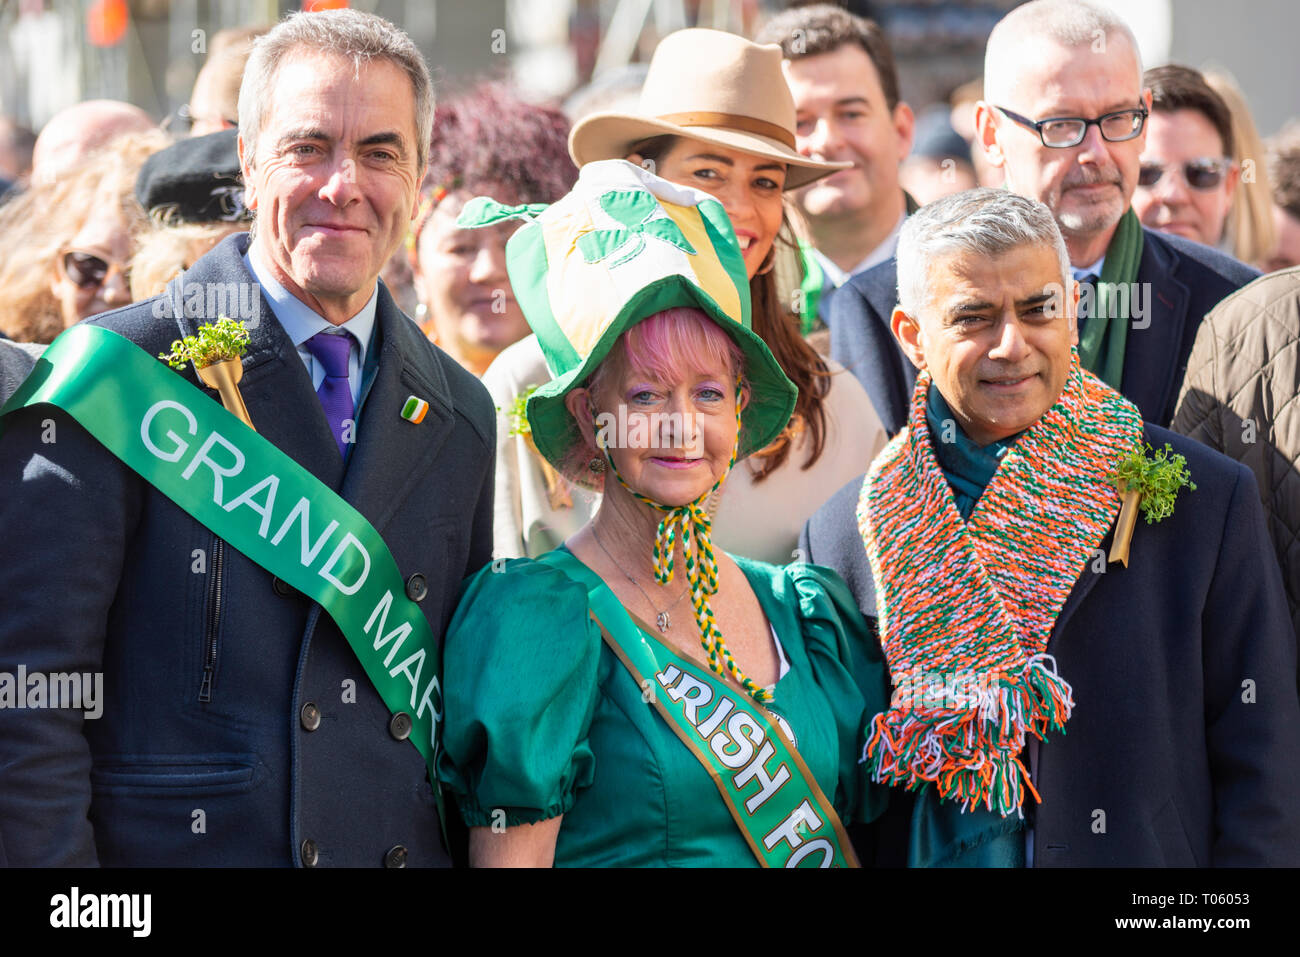 Traditional St Patrick's Day Parade through London, UK had actor James Nesbitt as Grand Marshall joining Mayor of London Sadiq Khan at the head of a huge procession - Stock Image